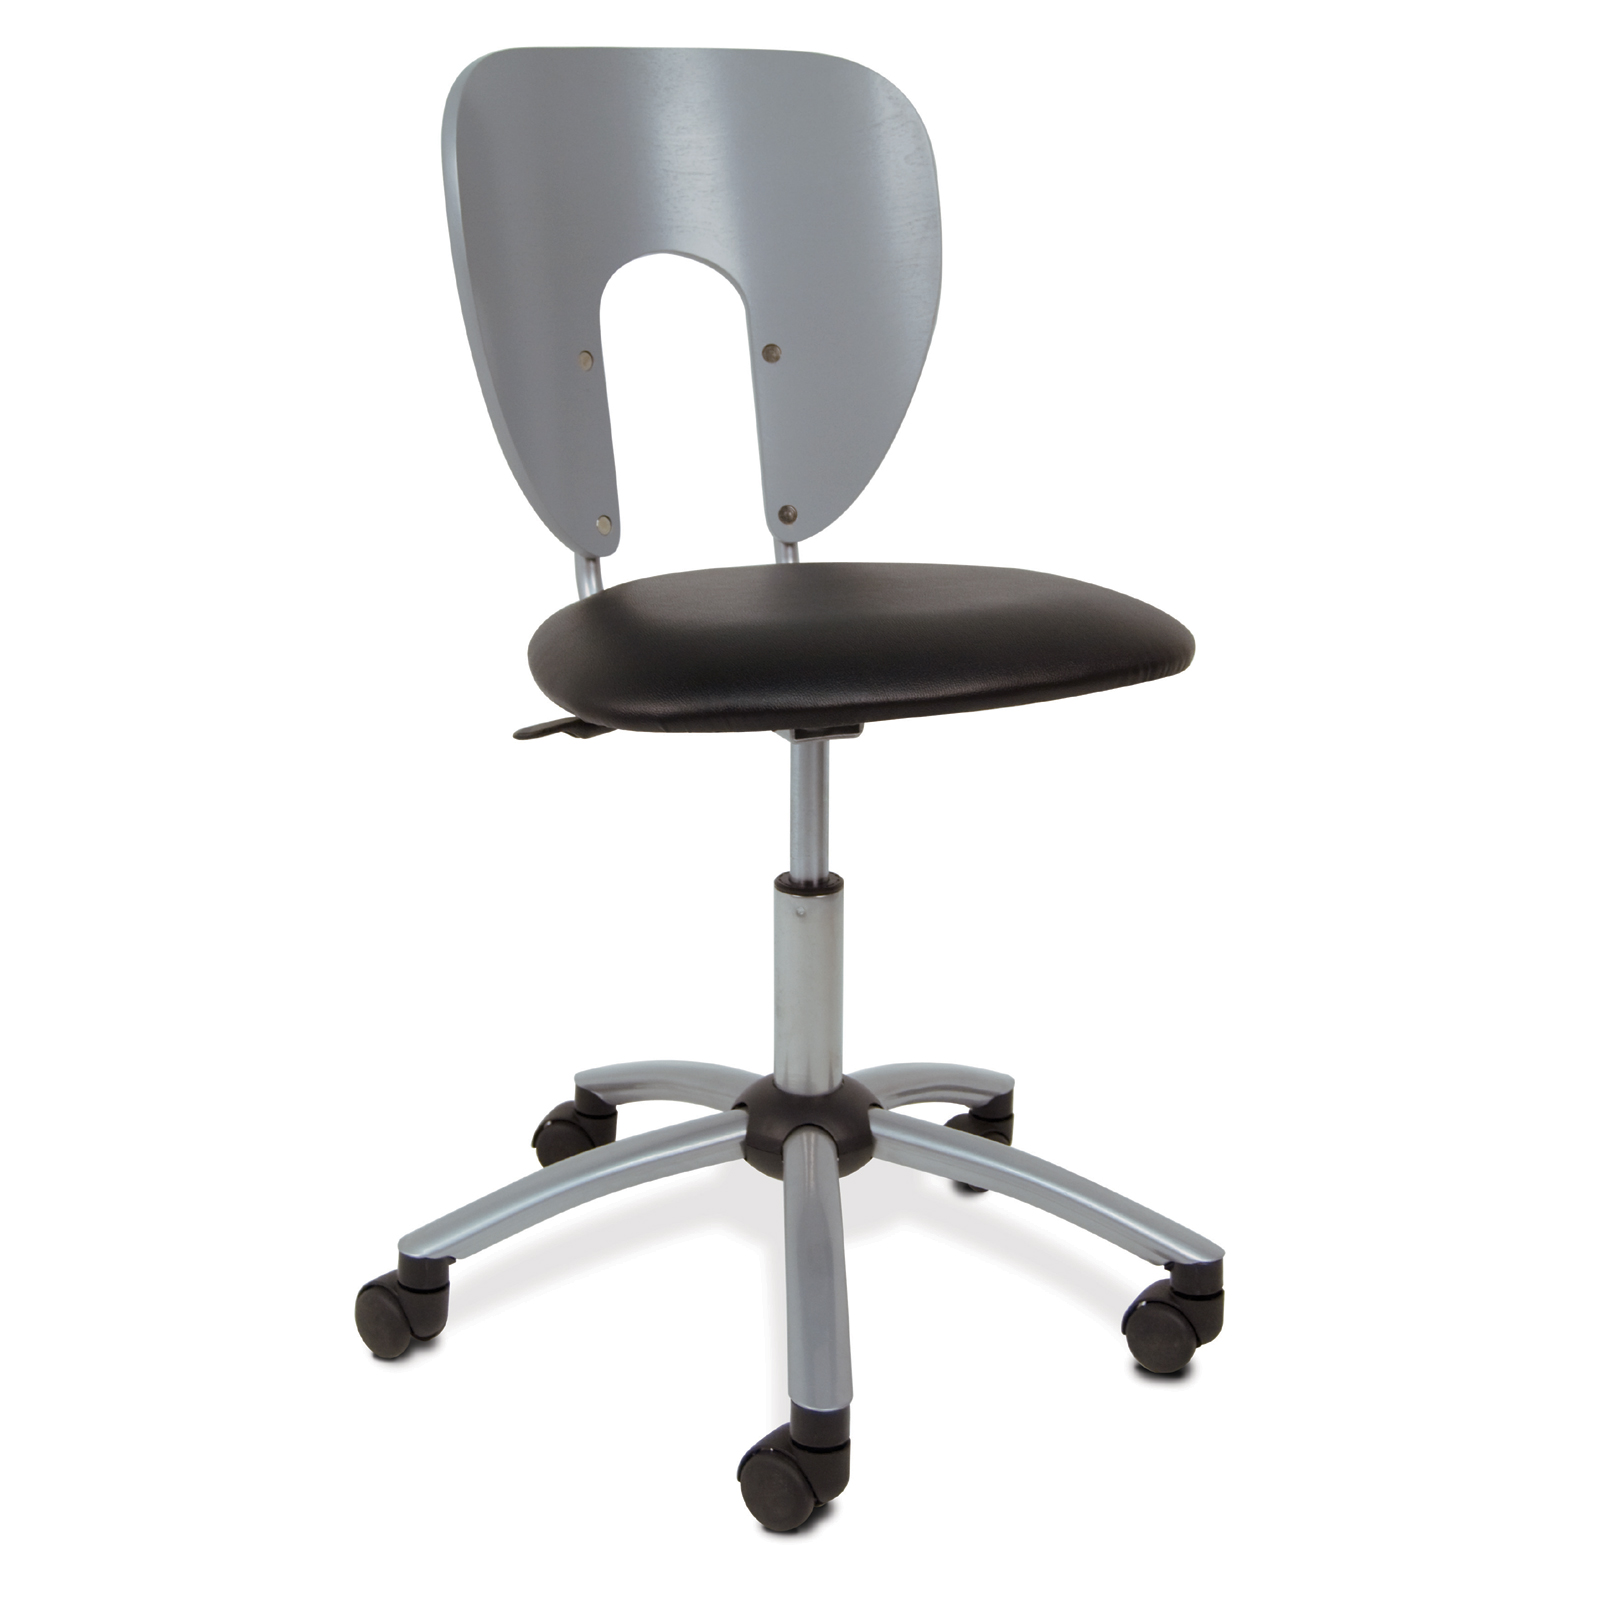 adjustable desk chairs shower chair vs tub bench futura vision in armless office